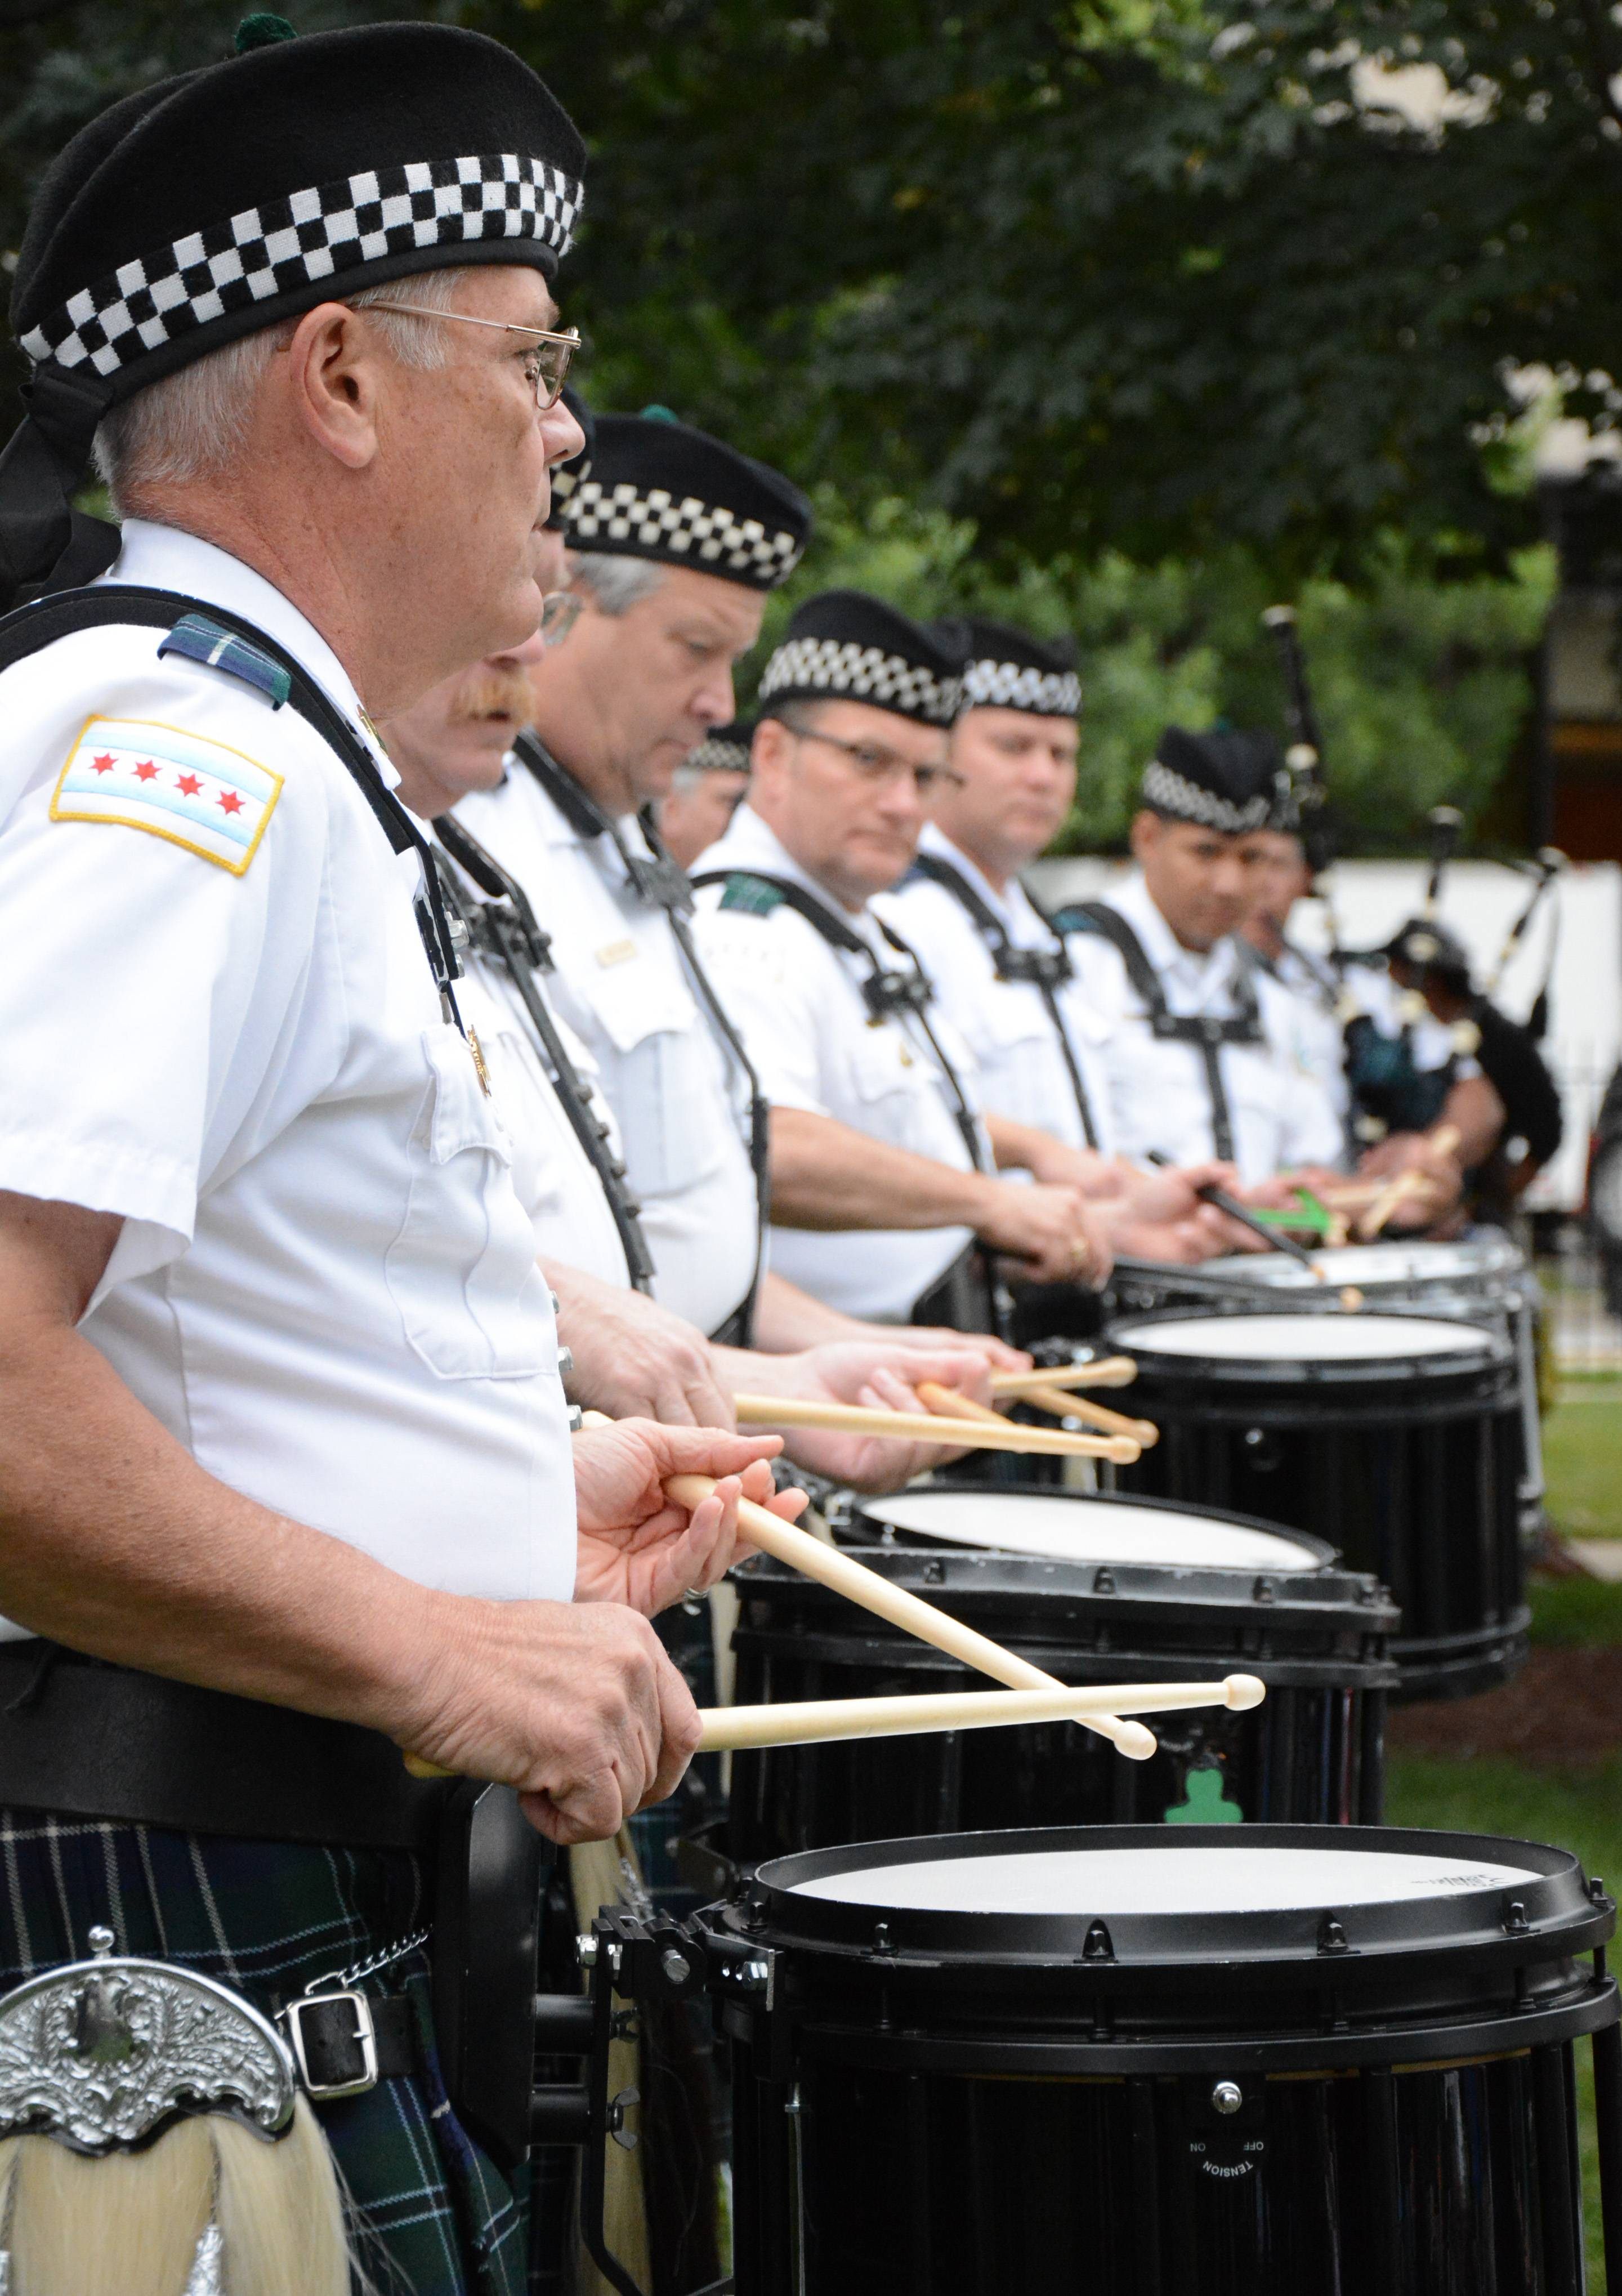 The Emerald Society Pipes & Drums are headliners again this year at the festival.